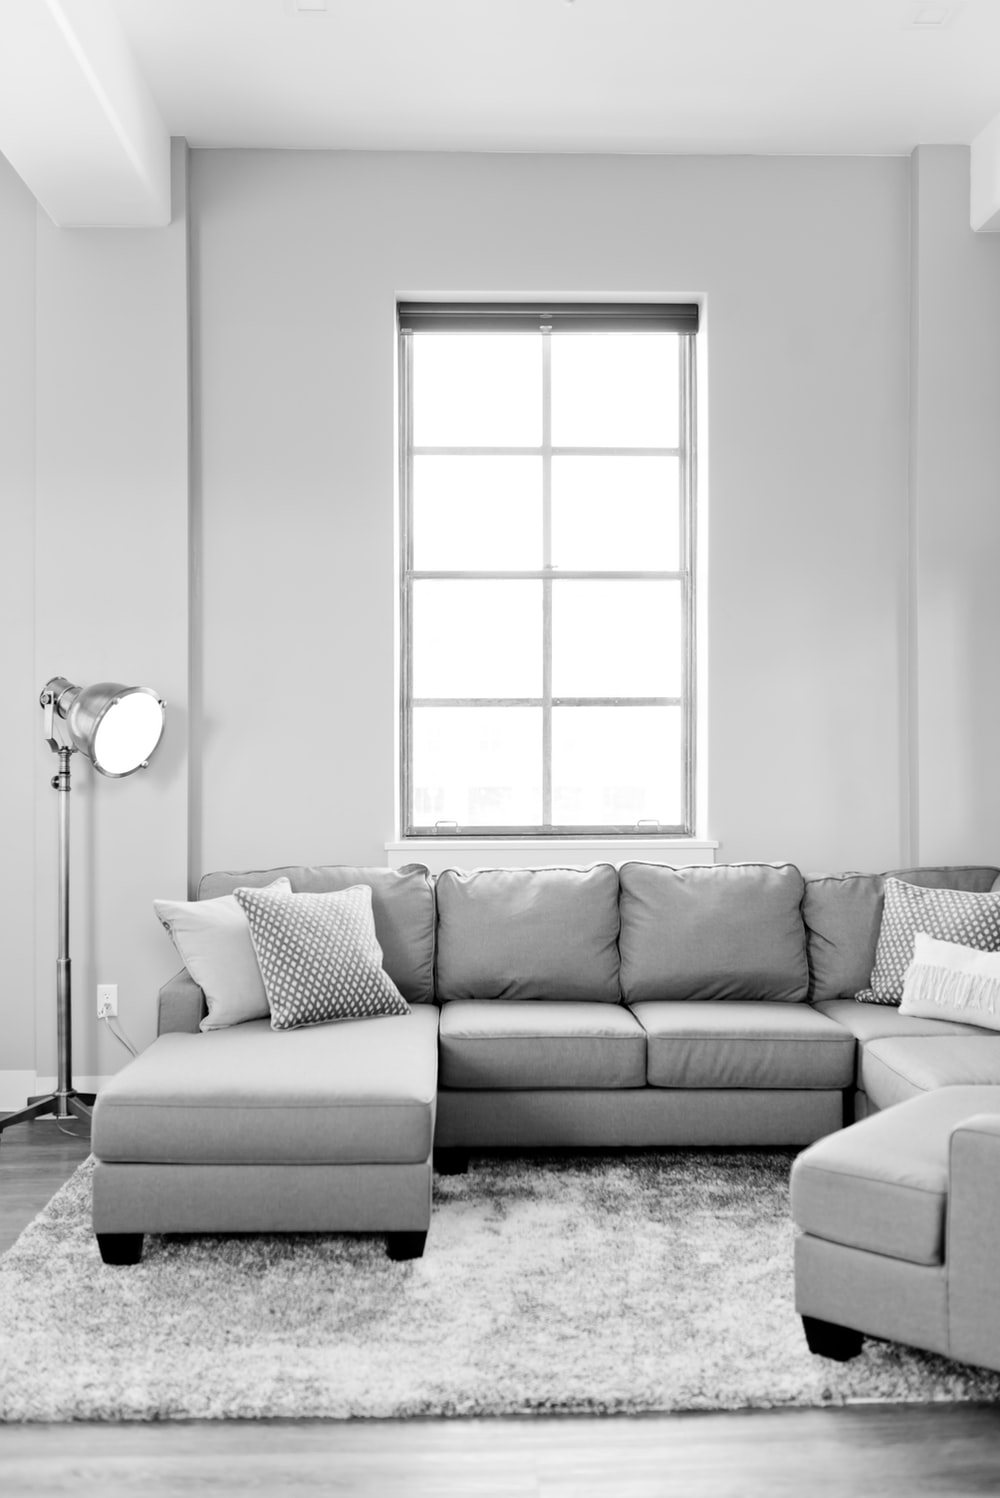 Miraculous Gray Fabric Sectional Sofa Photo Free Black And White Ibusinesslaw Wood Chair Design Ideas Ibusinesslaworg